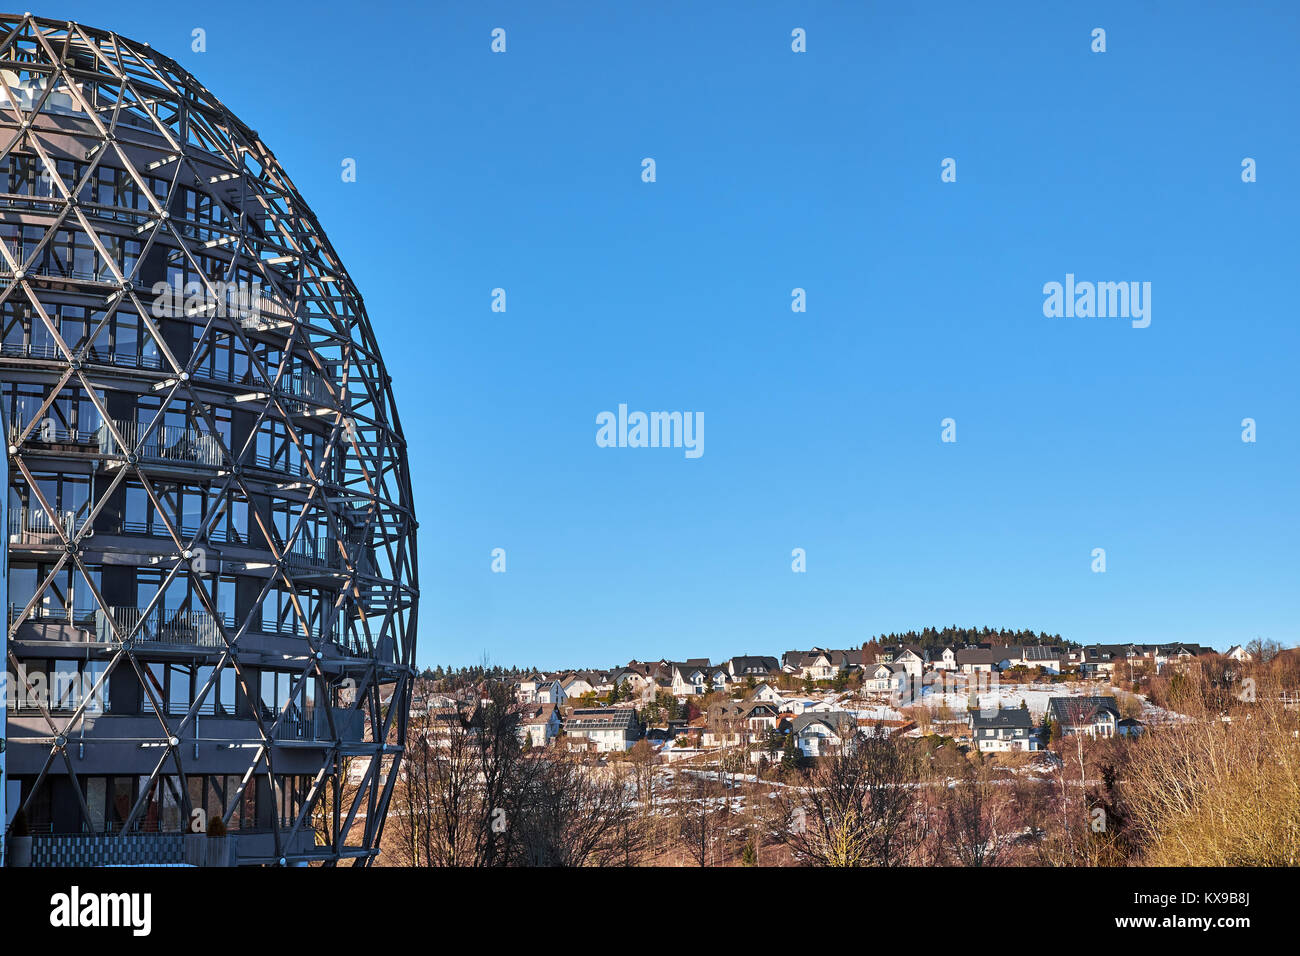 WINTERBERG, GERMANY - FEBRUARY 14, 2017: Futuristic egg shaped framework hotel building in front of small villas - Stock Image